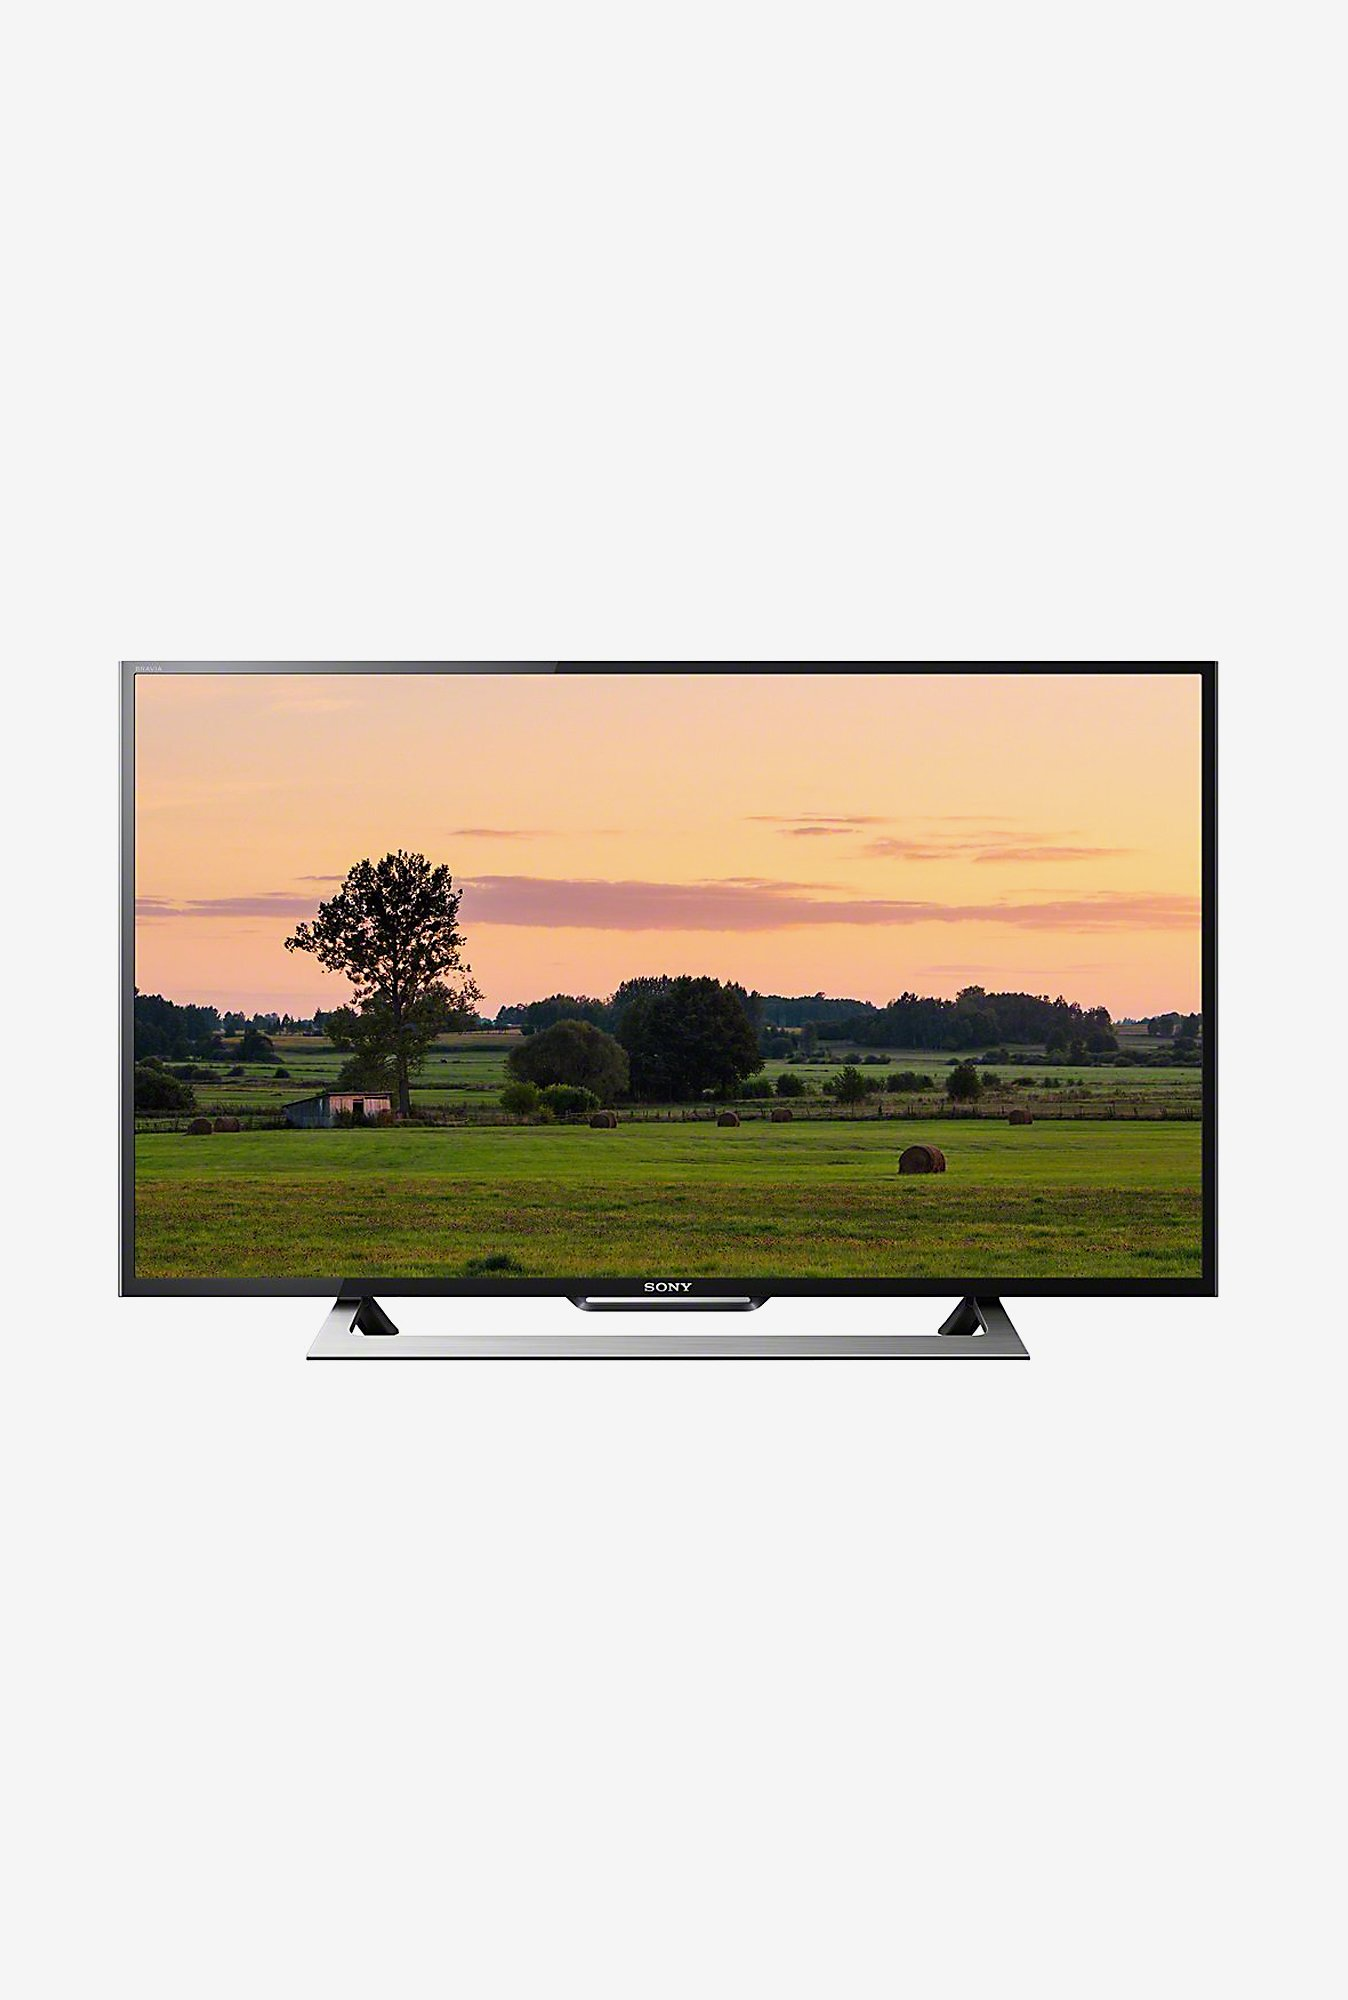 Sony Bravia KLV-32W562D 80cm Full HD LED TV (Black)